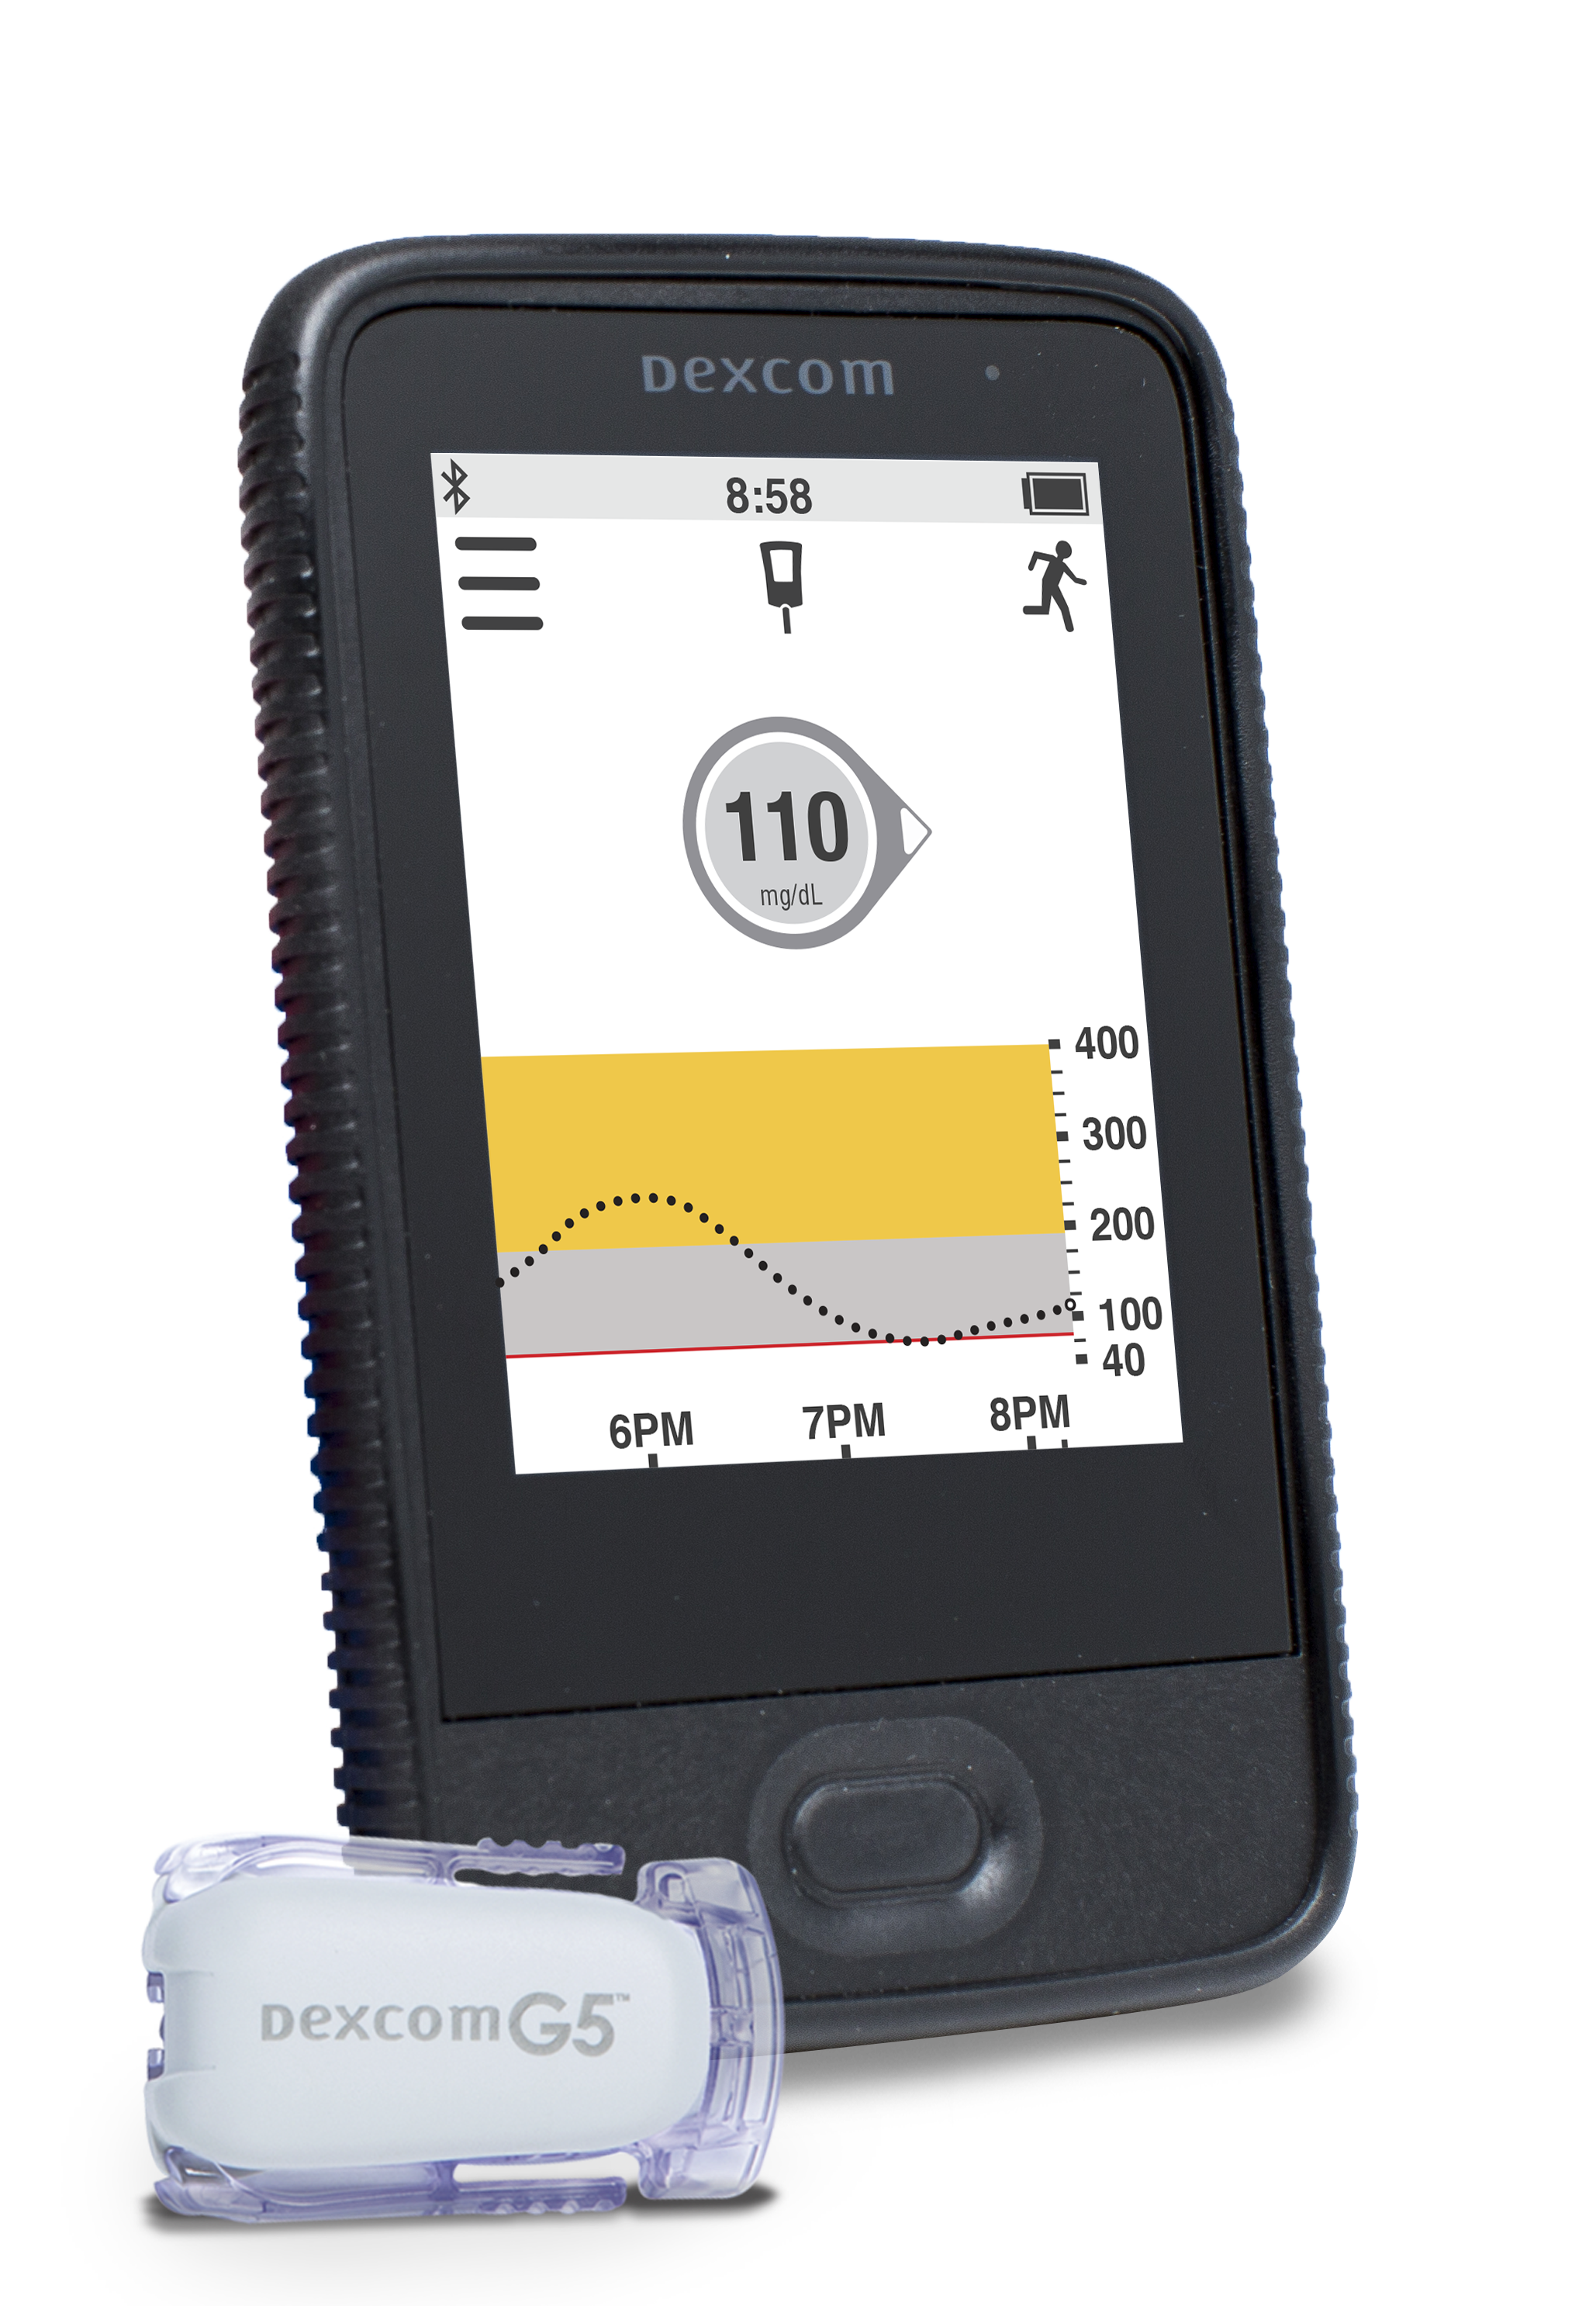 Dexcom G5 Mobile Cgm Media Images Dexcom